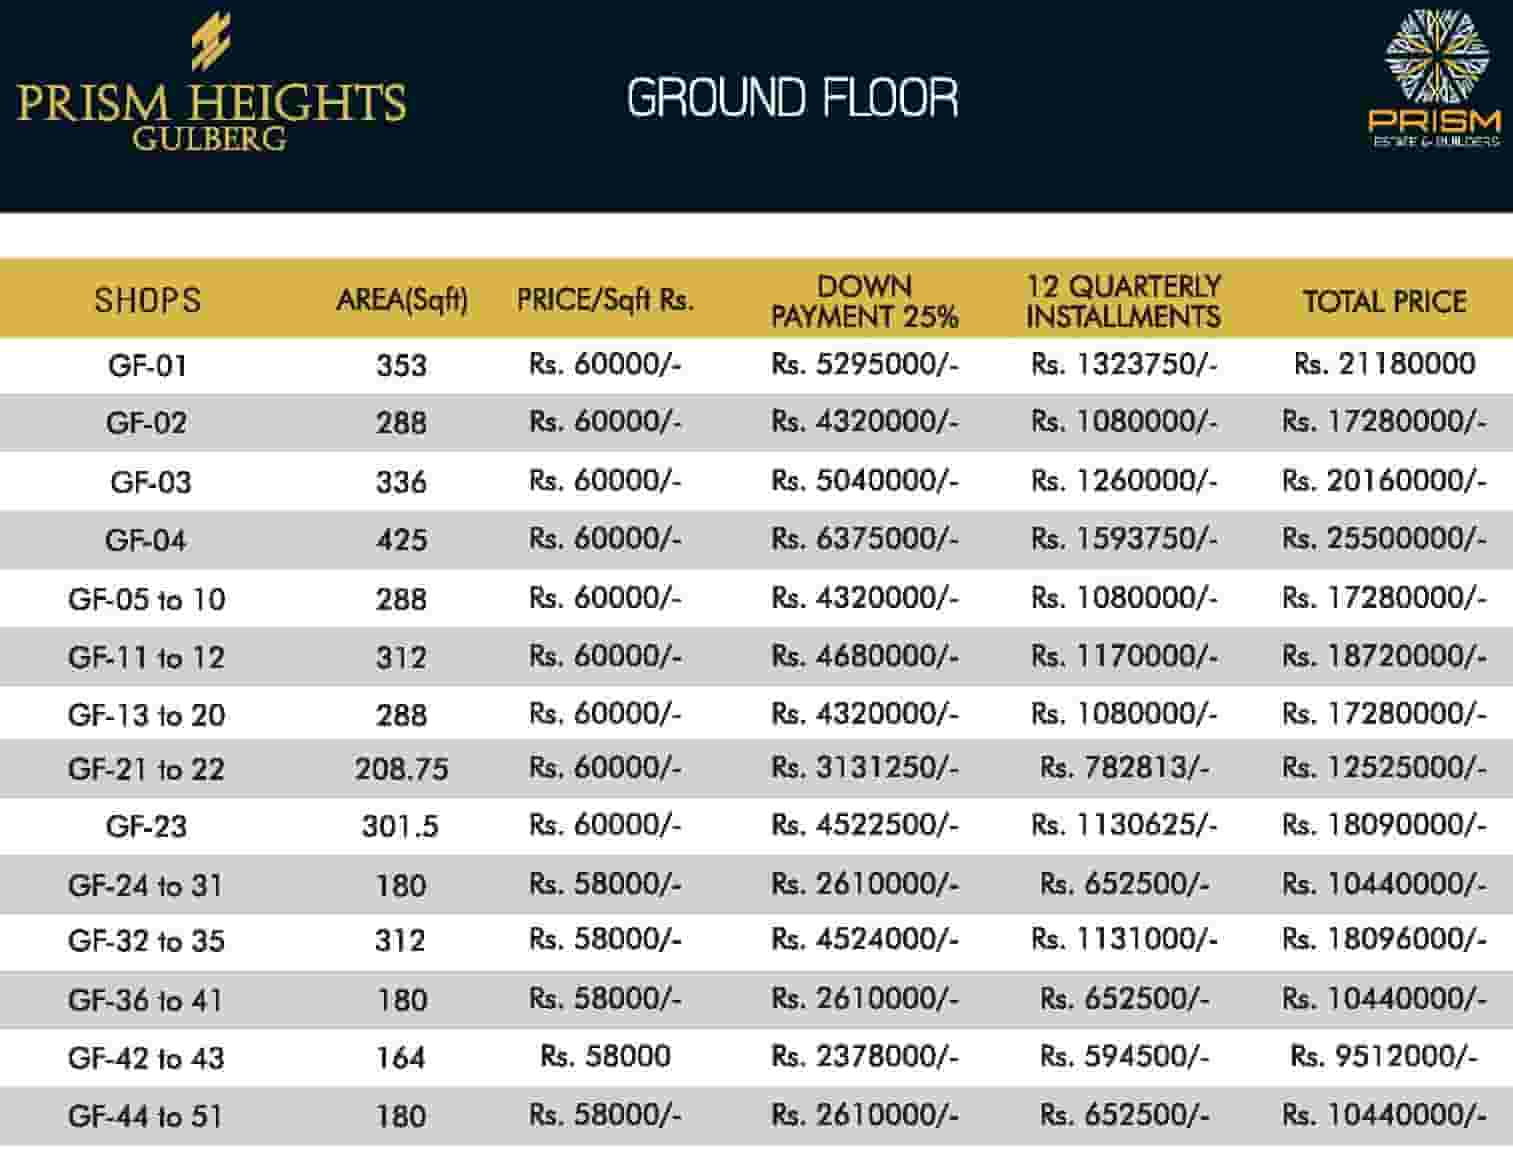 Prism Heights Ground Floor Payment Plan 1